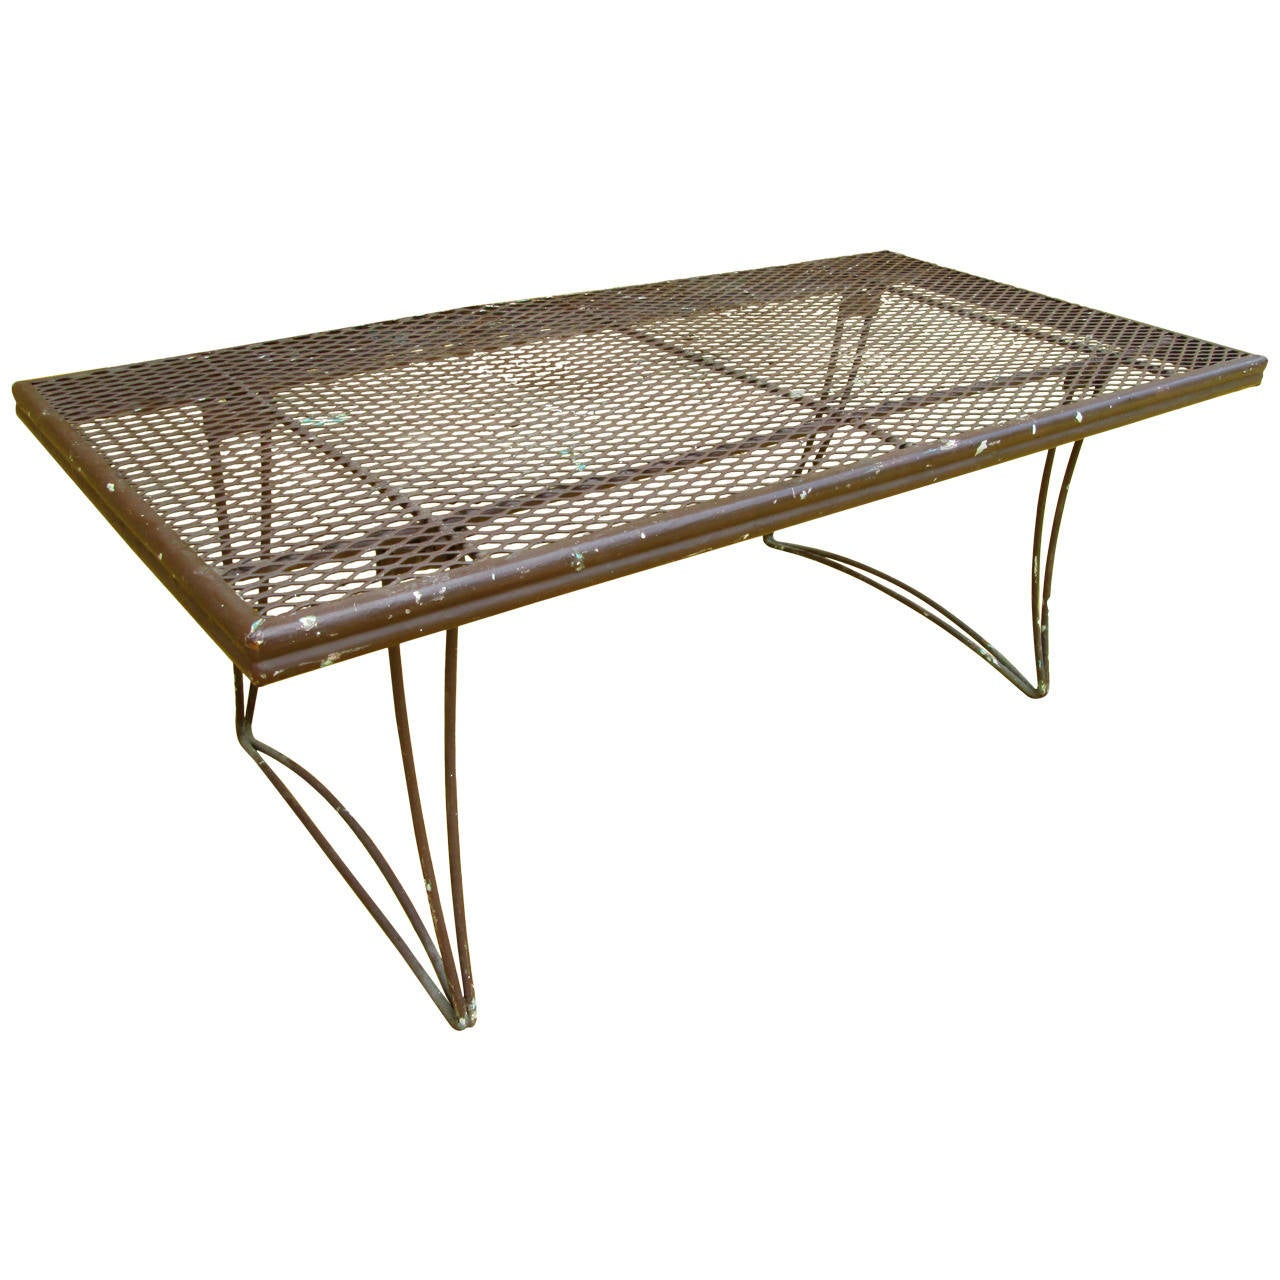 Inspiring metal patio coffee table patio design 384 Patio coffee tables